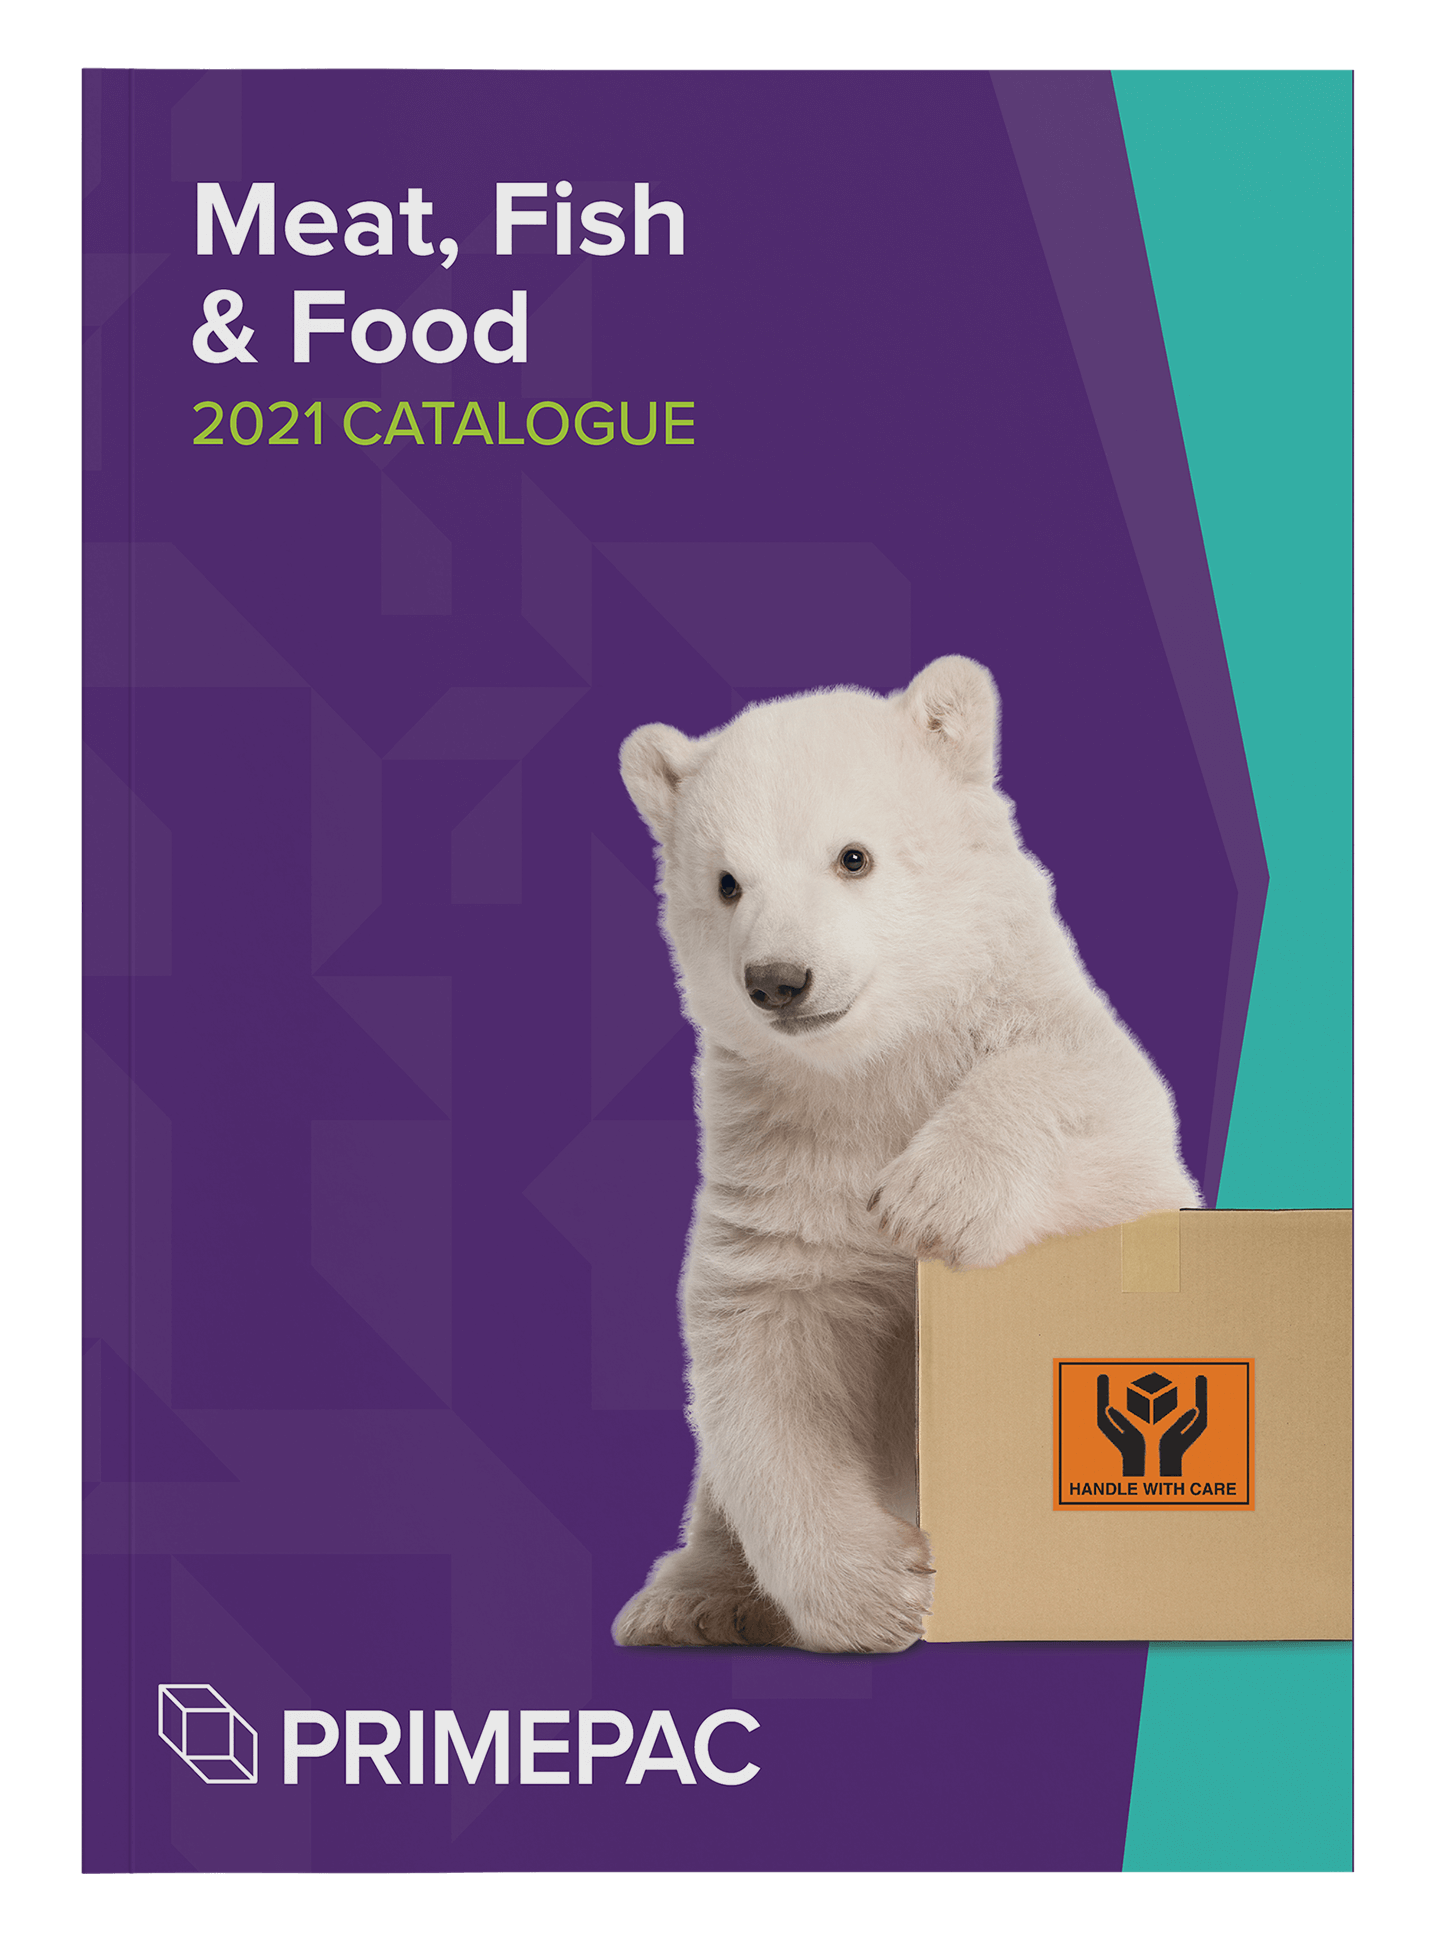 Meat, fish and food catalogue